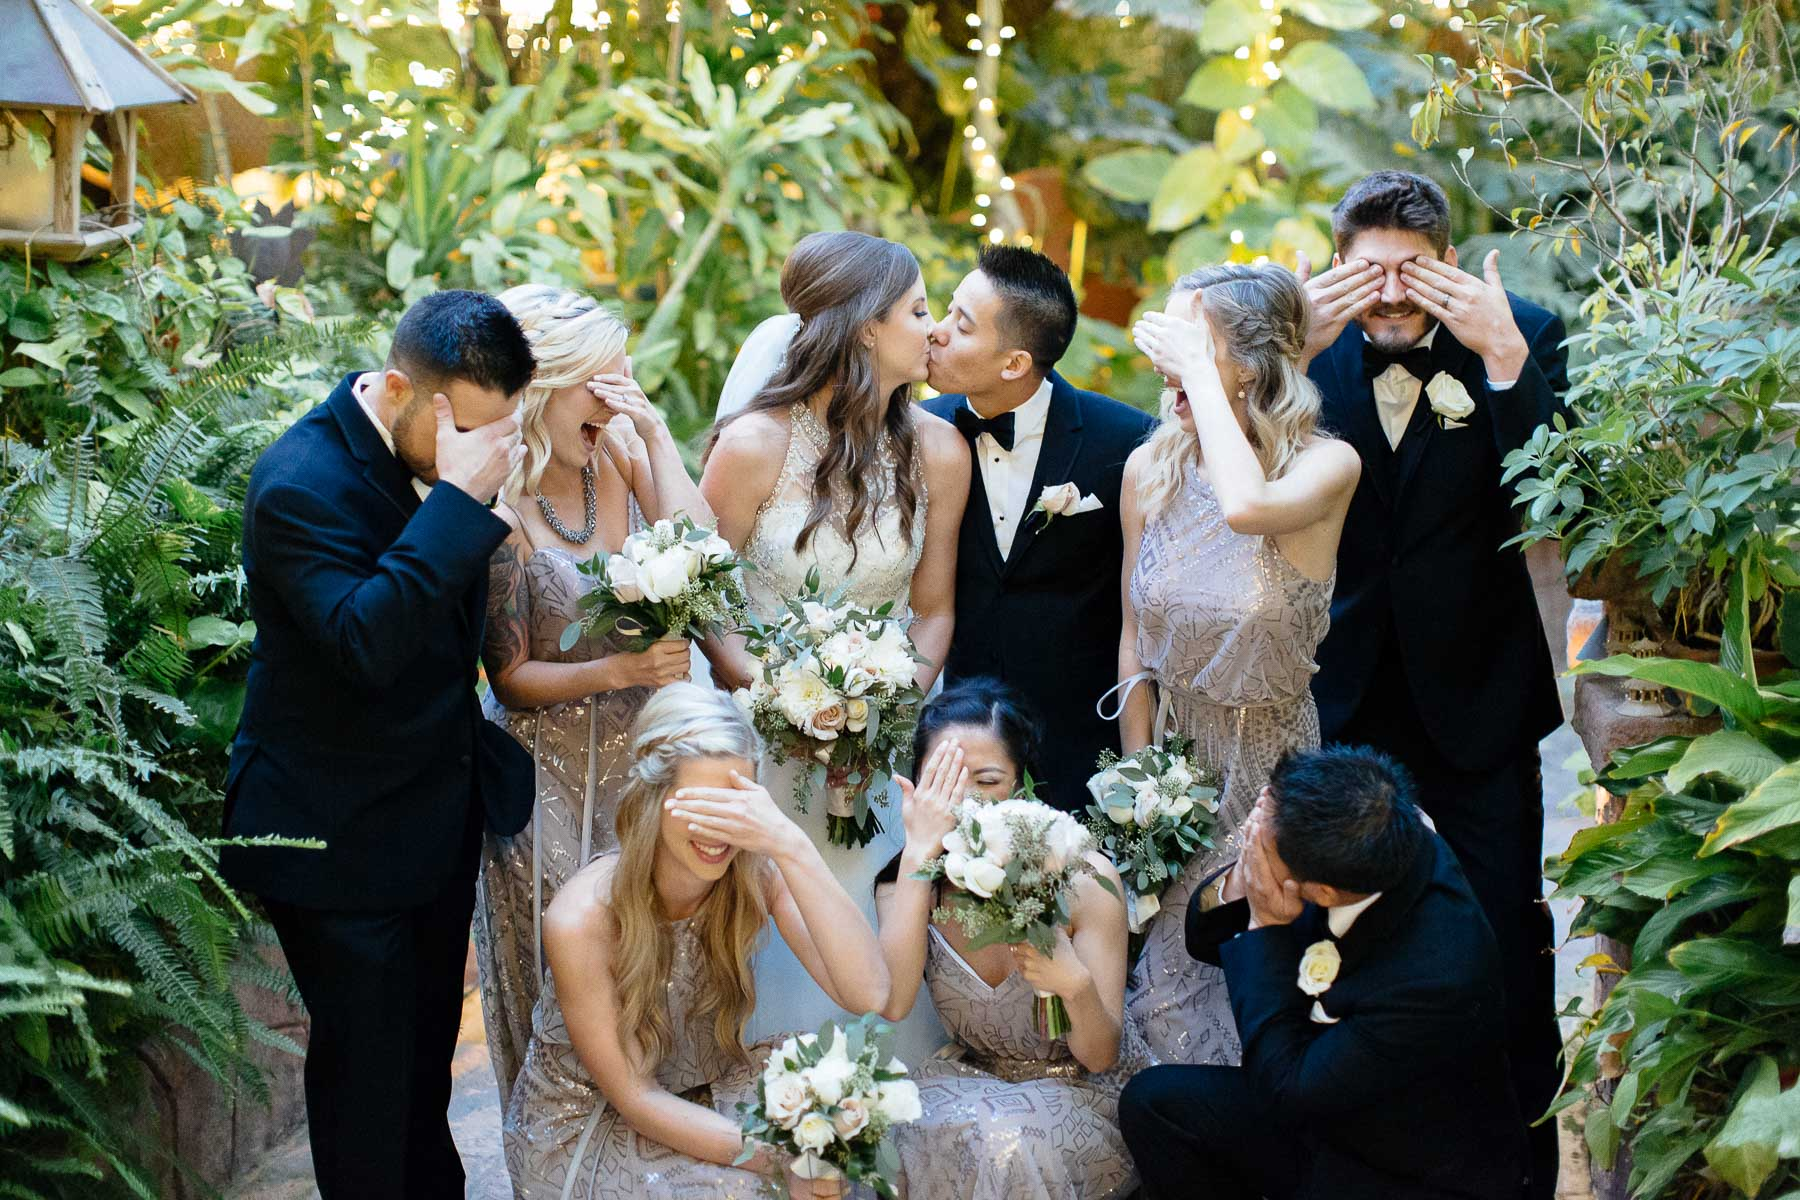 161112-Luxium-Weddings-Arizona-Jon-Madison-Boojum-Tree-First-Look-042.jpg